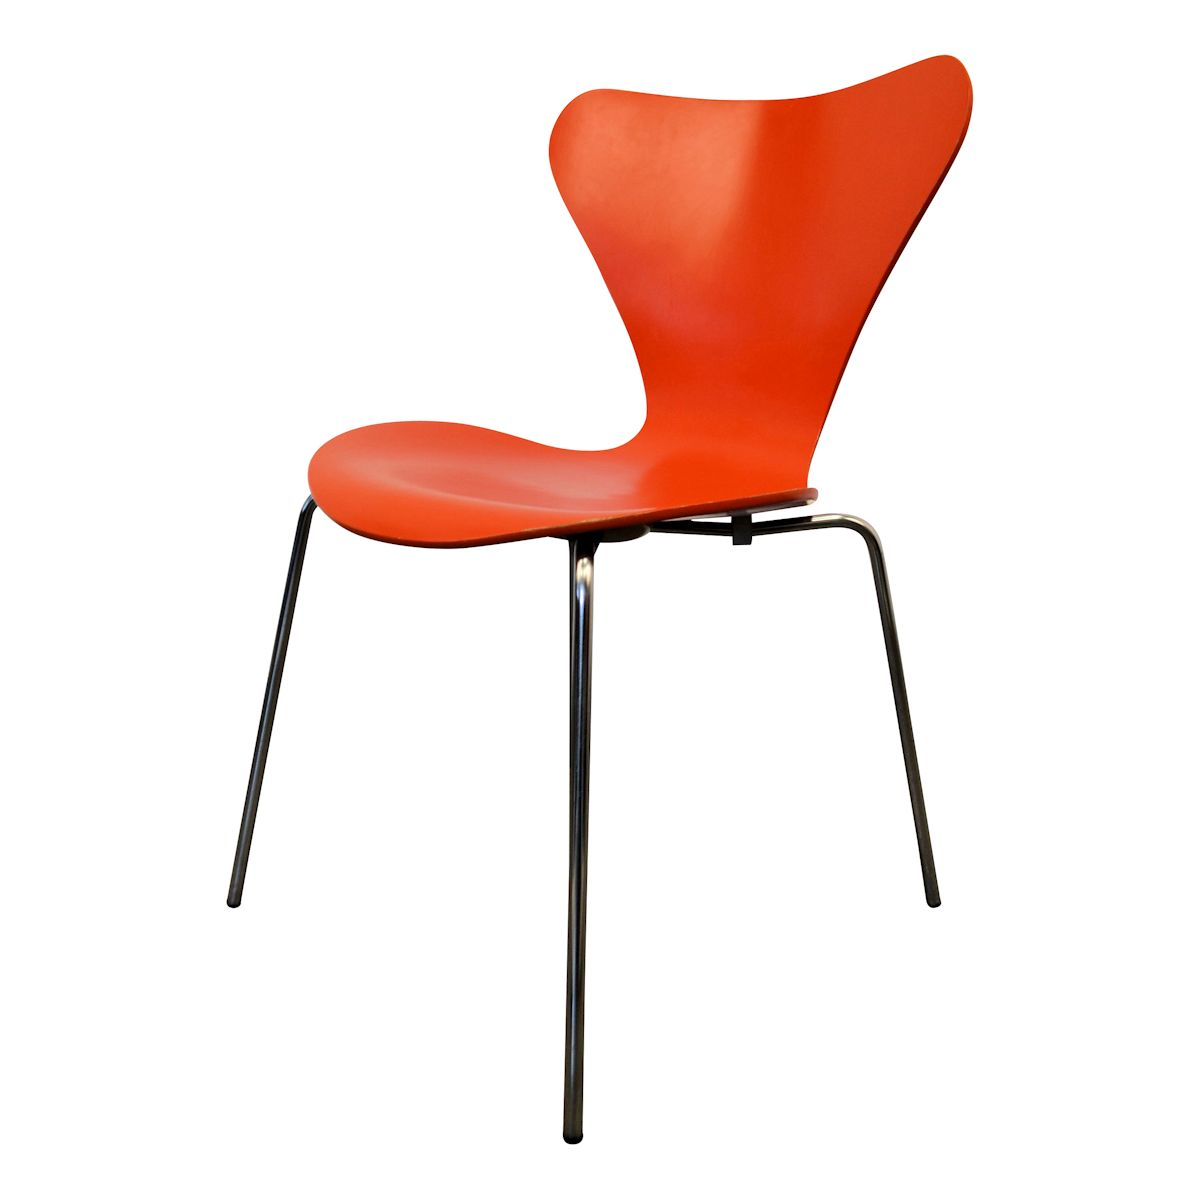 Model 3107 Butterfly Chairs by Arne Jacobsen - detail backrest